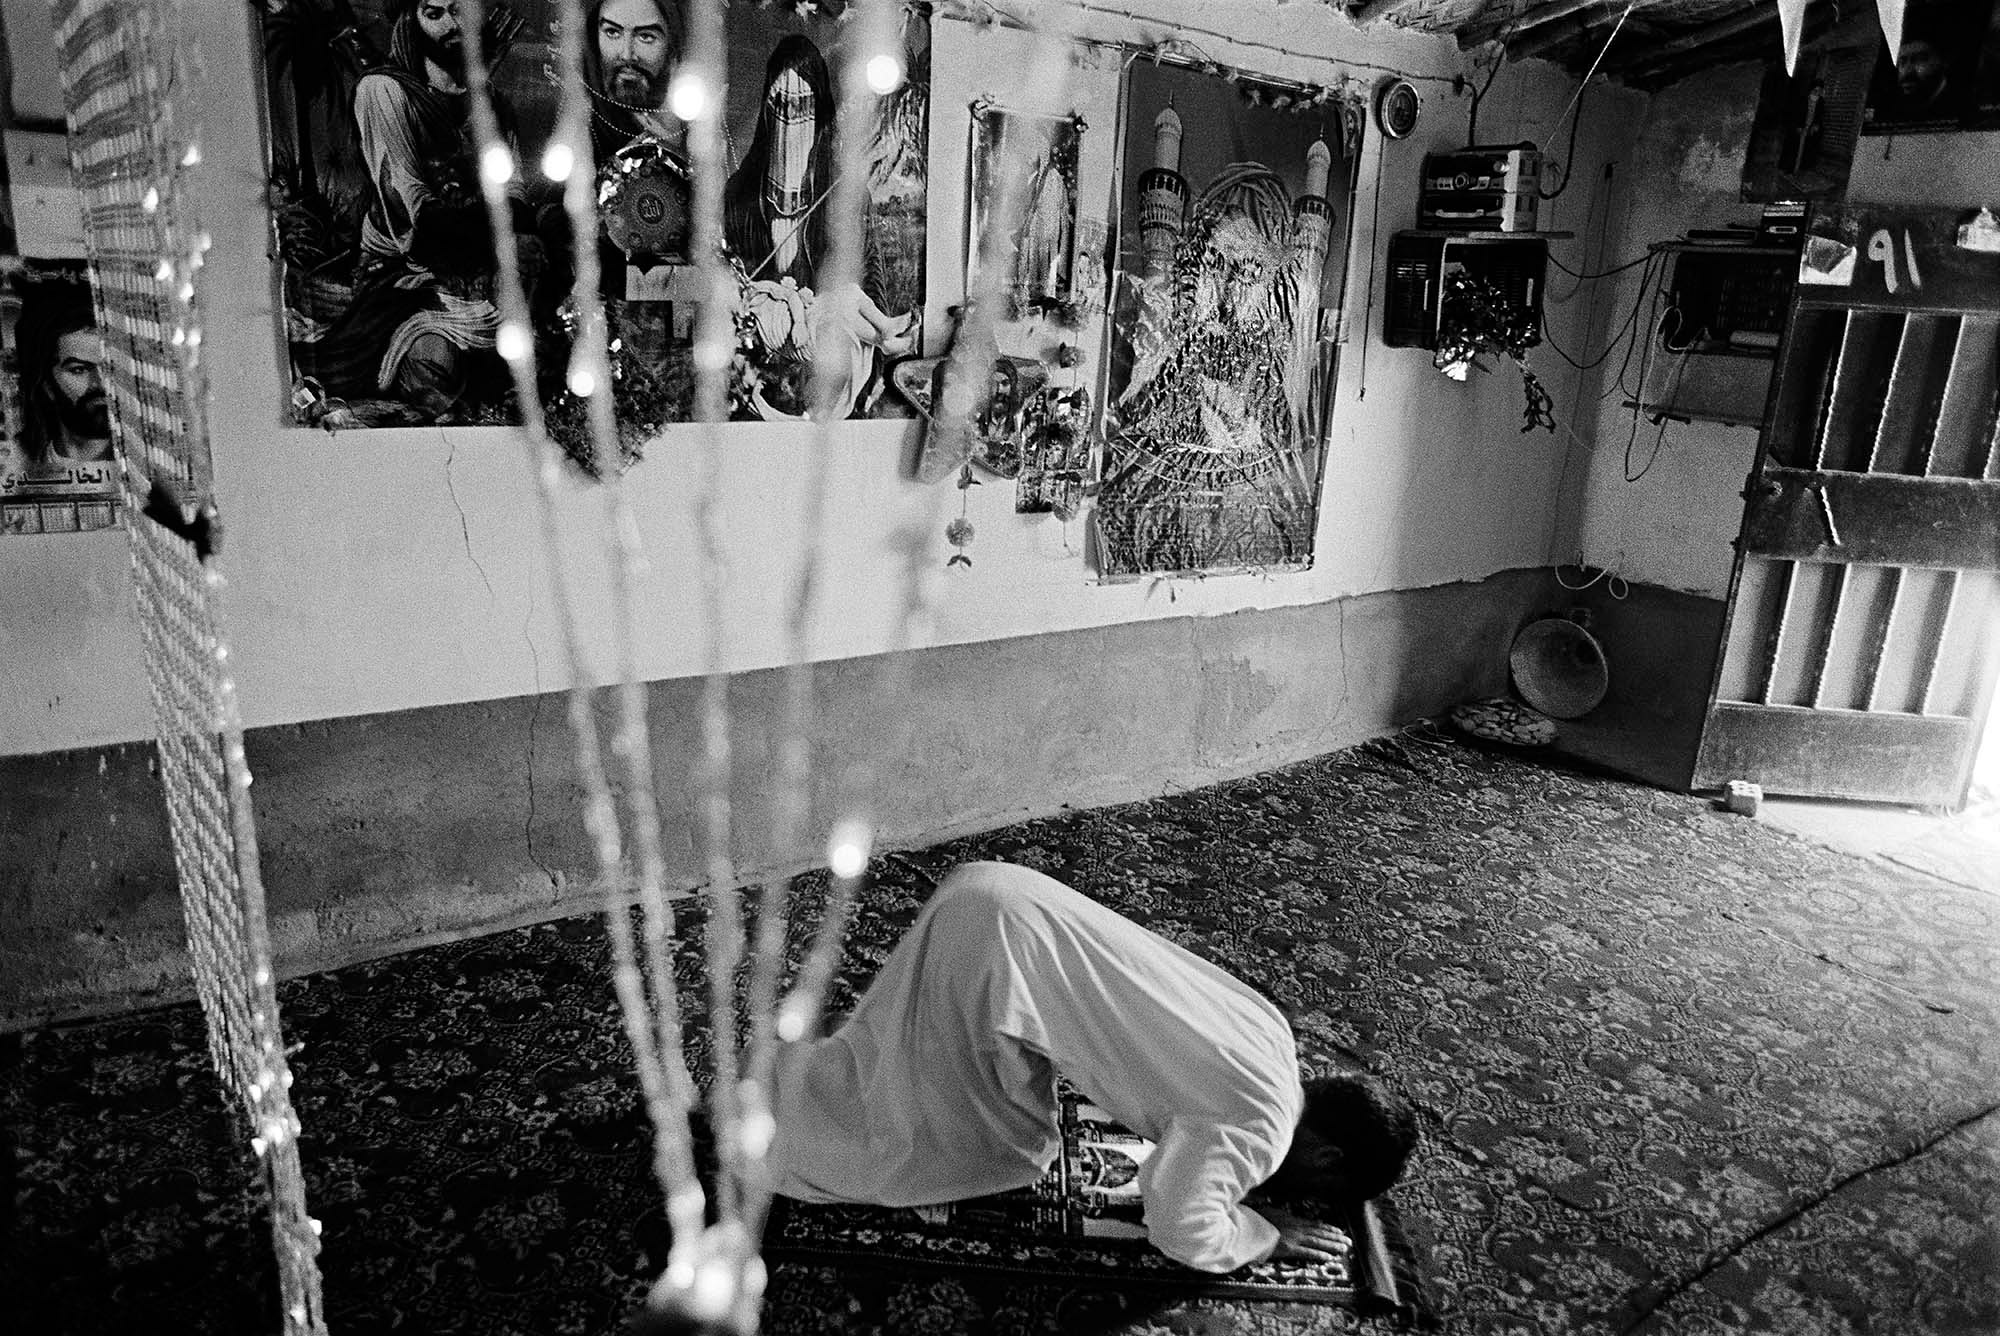 One hundred and twenty Dom families live in the Dom village of Al-Zuhoor, an isolated settlement outside of Diwaniyah. A young man from prays at the community mosque in a Dom settlement outside of Diwaniyah.